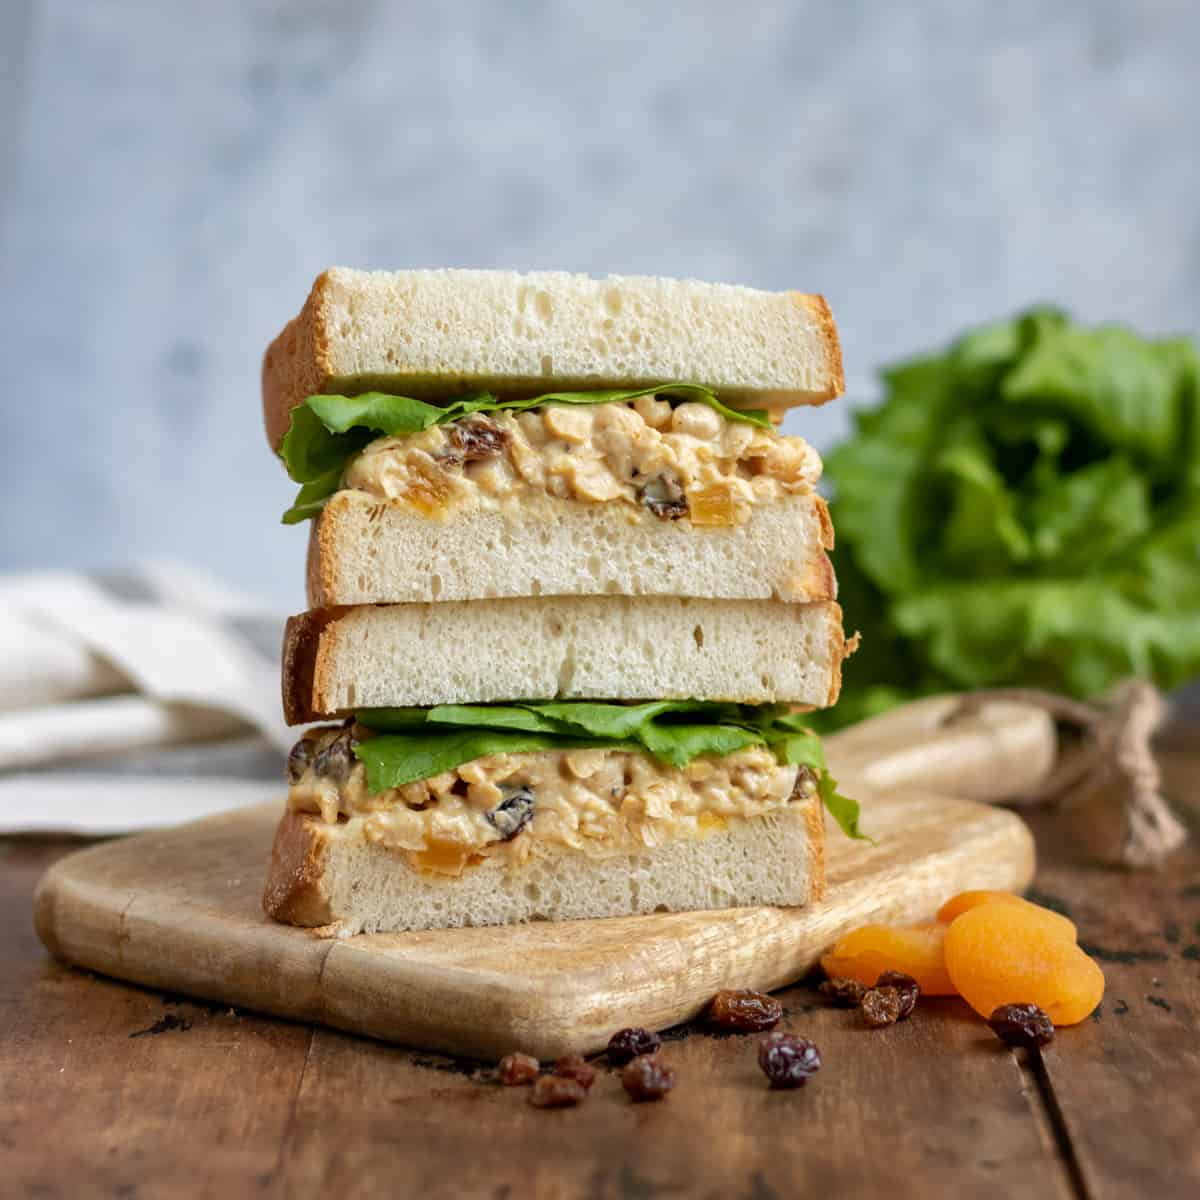 A stack of vegan chickpea sandwiches on a table.